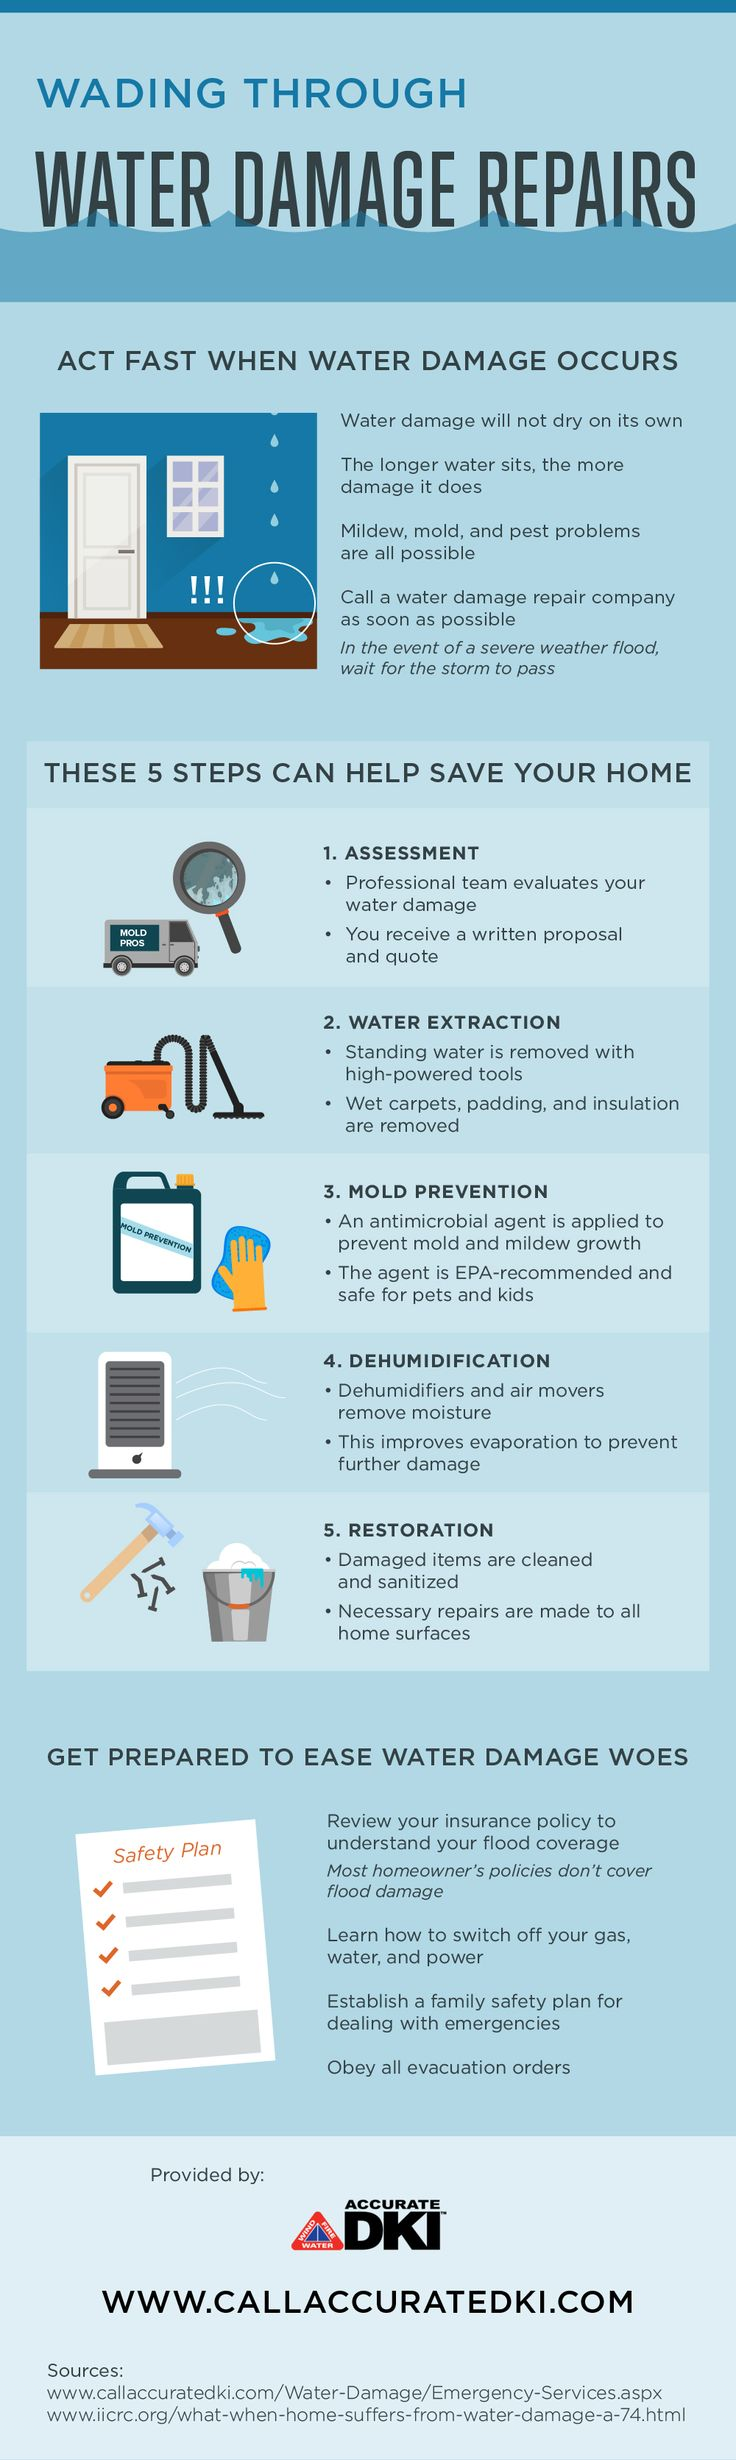 Water damage repair entails five steps, and they can help you save your home! Learn about them by looking at this infographic on water damage repairs. #Infographic #Data visualization #Water Damage #Mold #Flood #Fire Damage